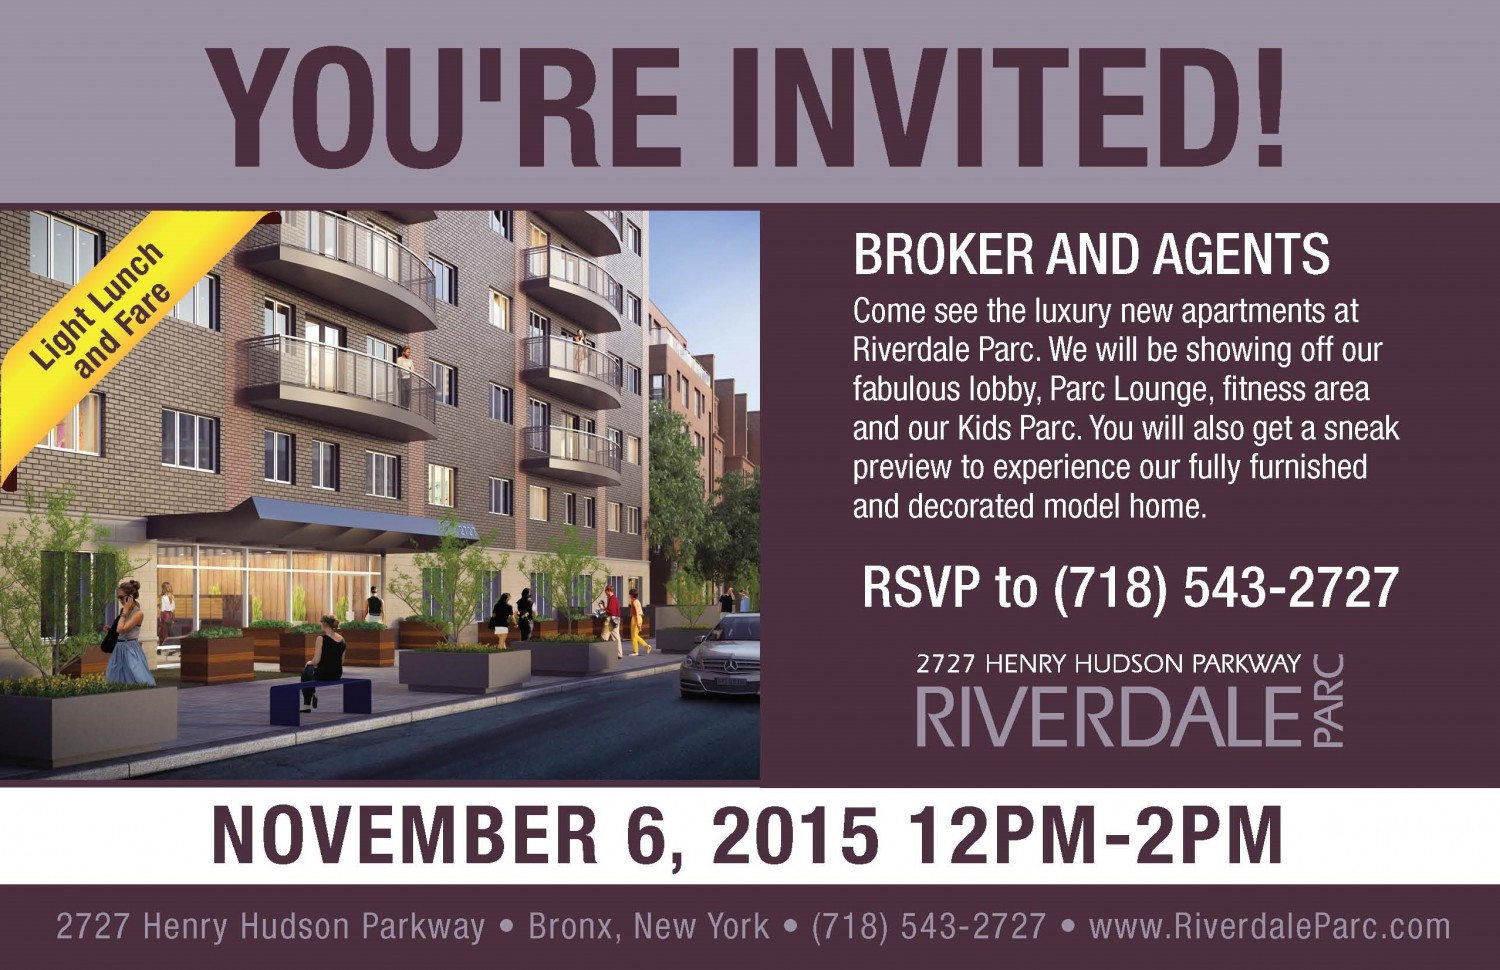 1 Bedroom Apartments In The Bronx You Re Invited Brokers And Agents Riverdaleparc